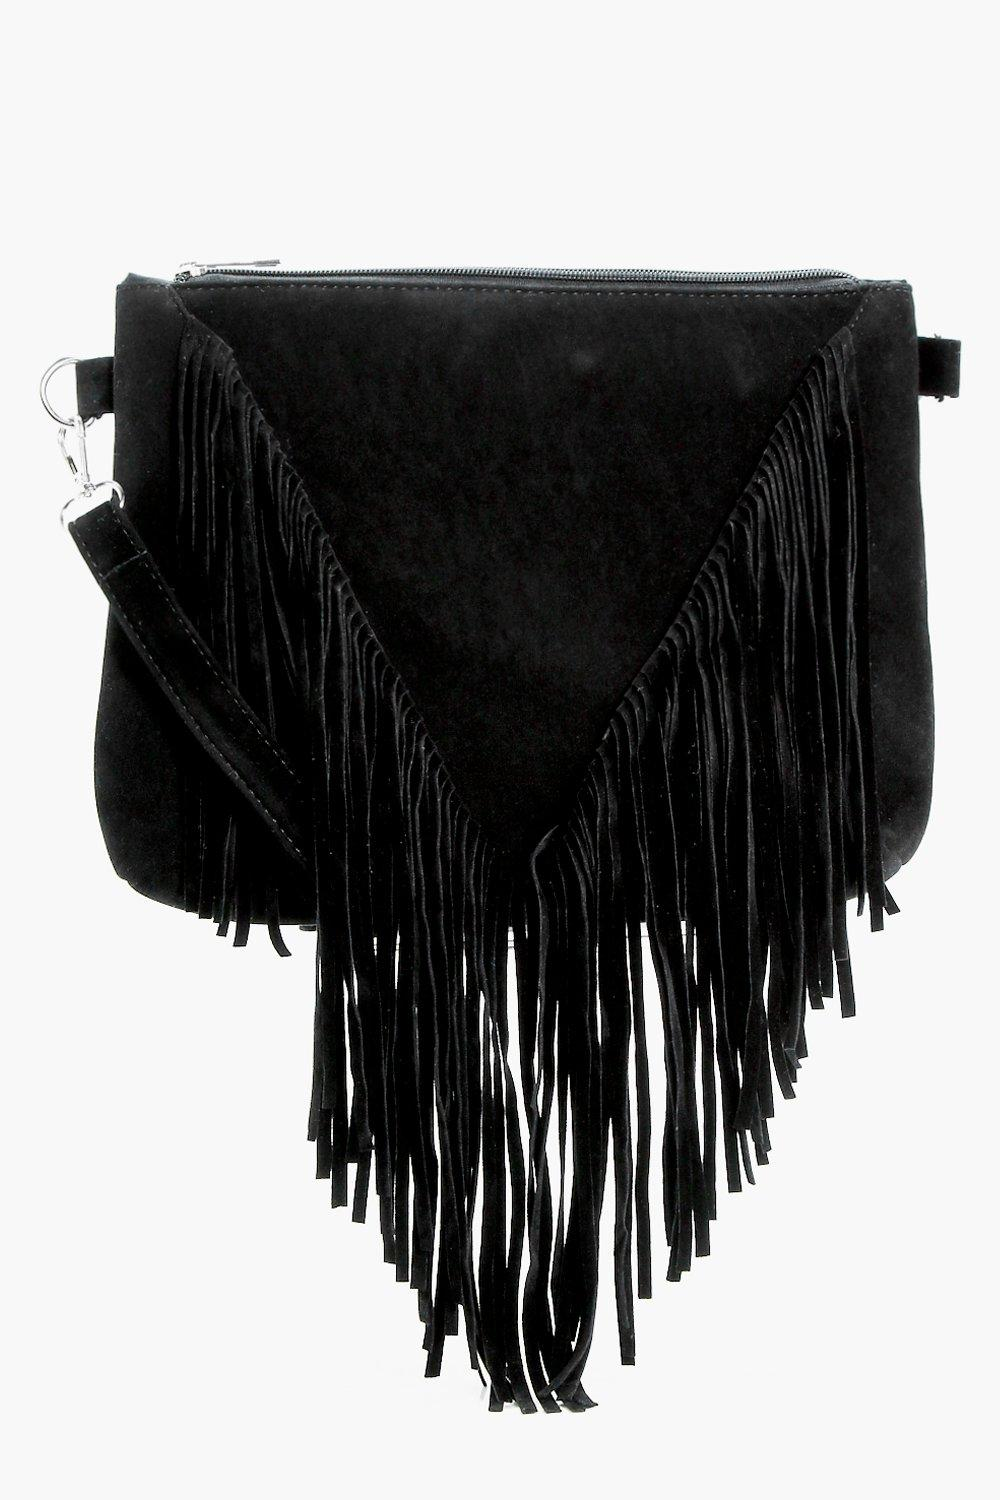 Suedette Fringed Cross Body - black - Kelly Suedet